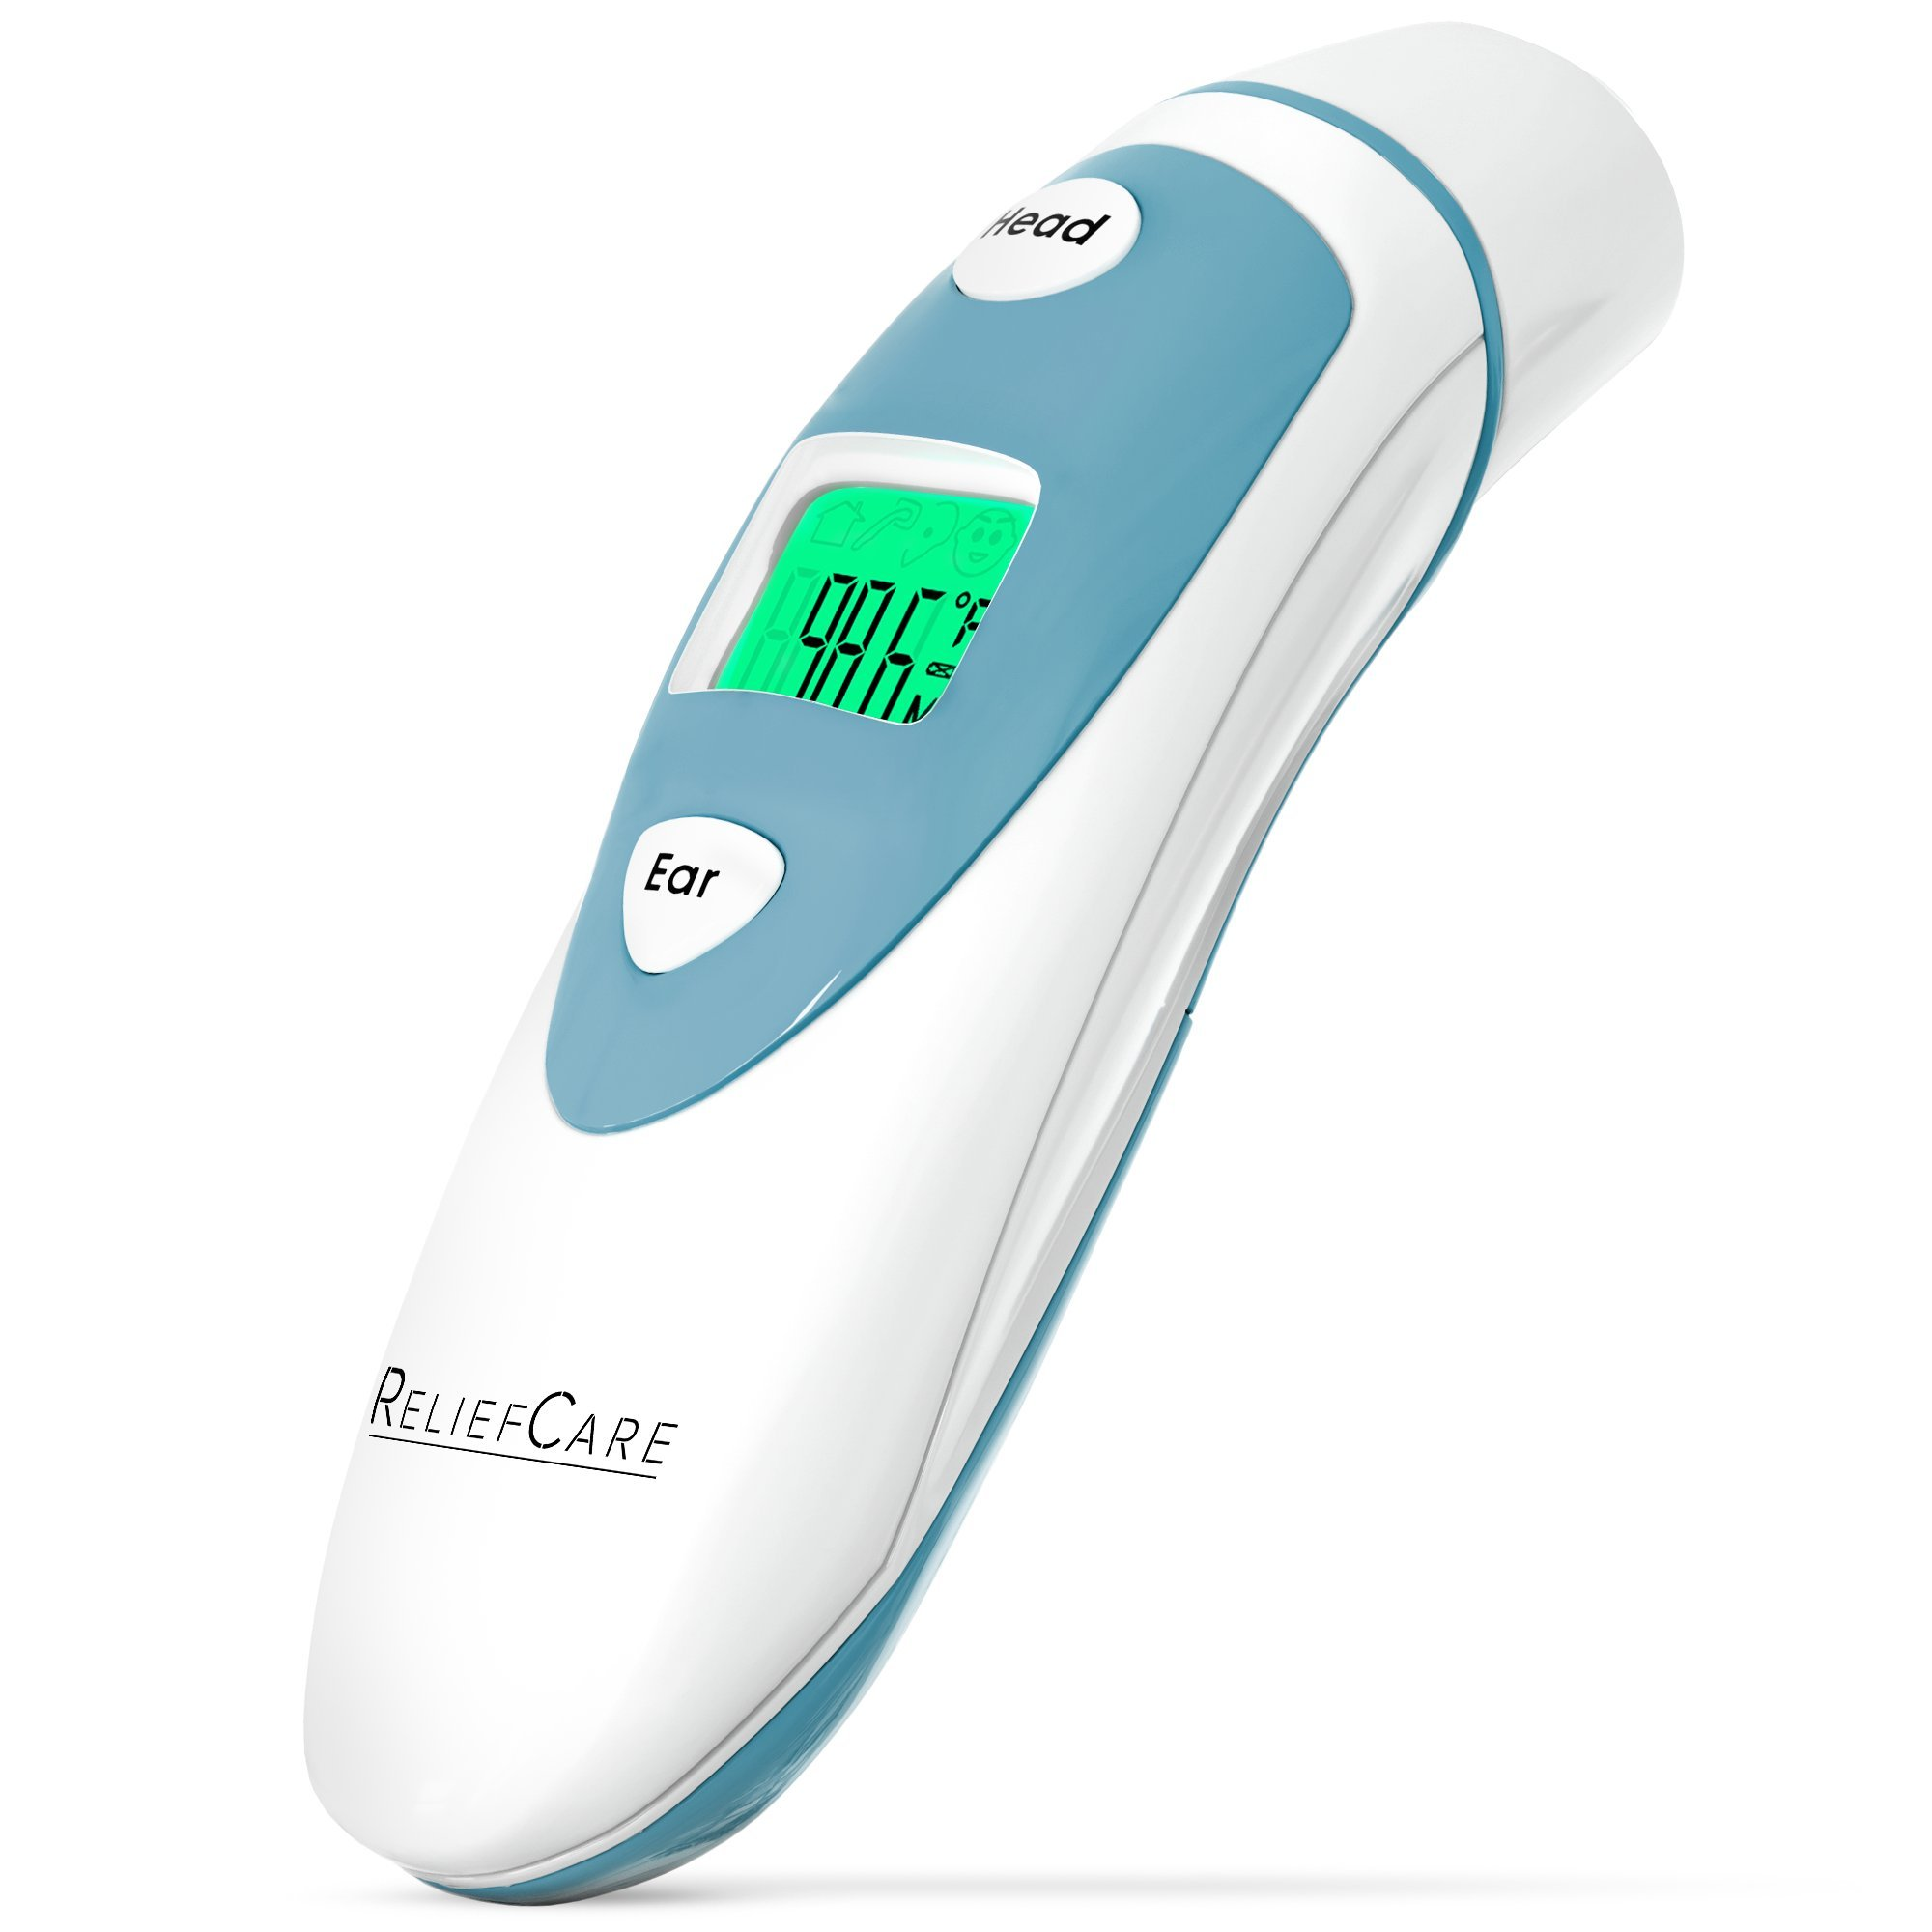 Digital Forehead and Ear Infrared Thermometer: Dual Mode Thermometer with Fever Alarm - Accurate Quick Read Temperature Thermometers for a Baby, Infant, Toddler, Child or Adult - FDA and CE Approved